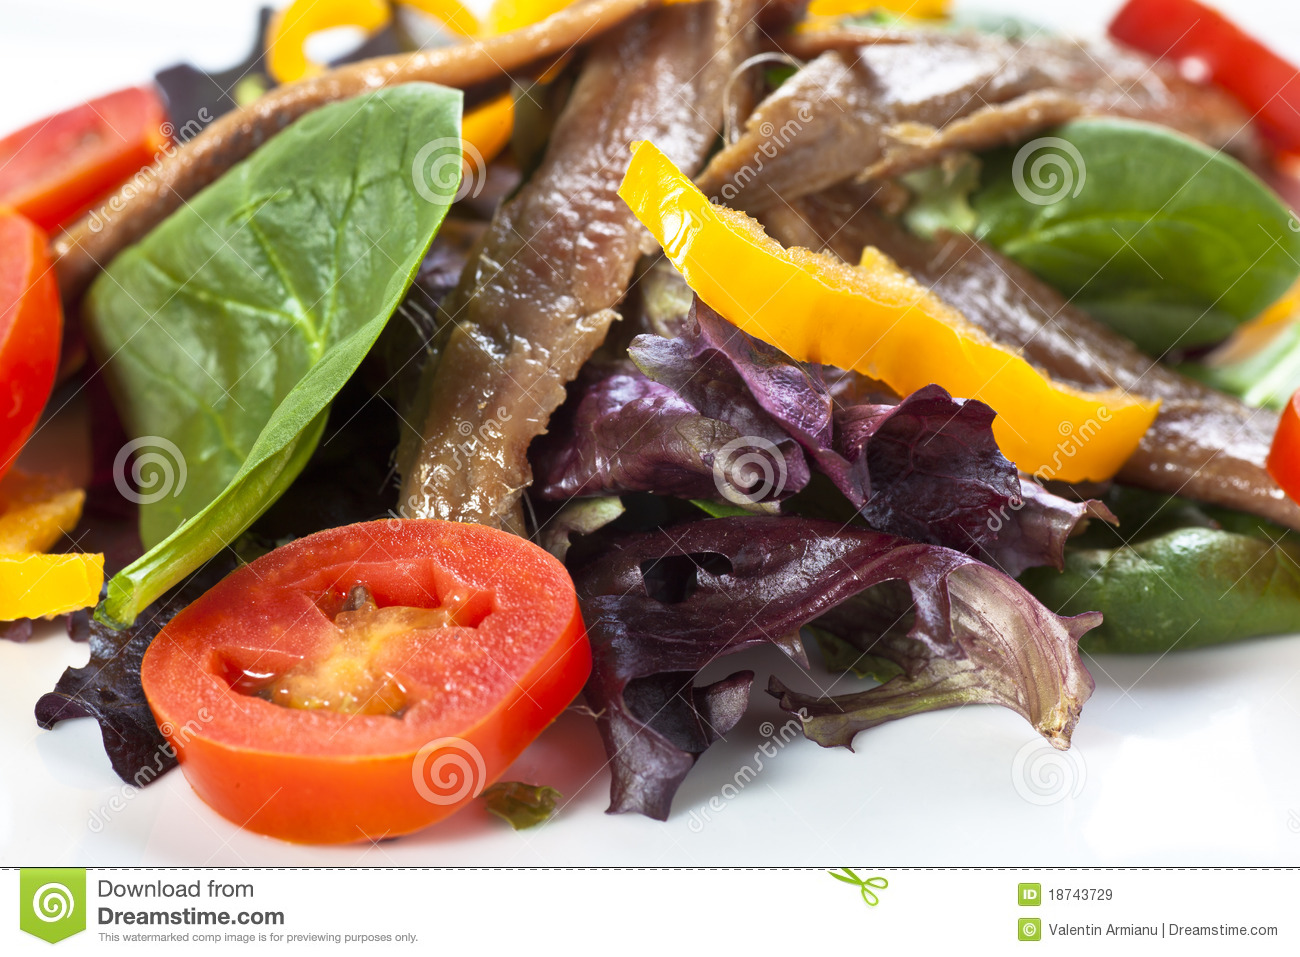 Anchovy Salad Royalty Free Stock Images - Image: 18743729